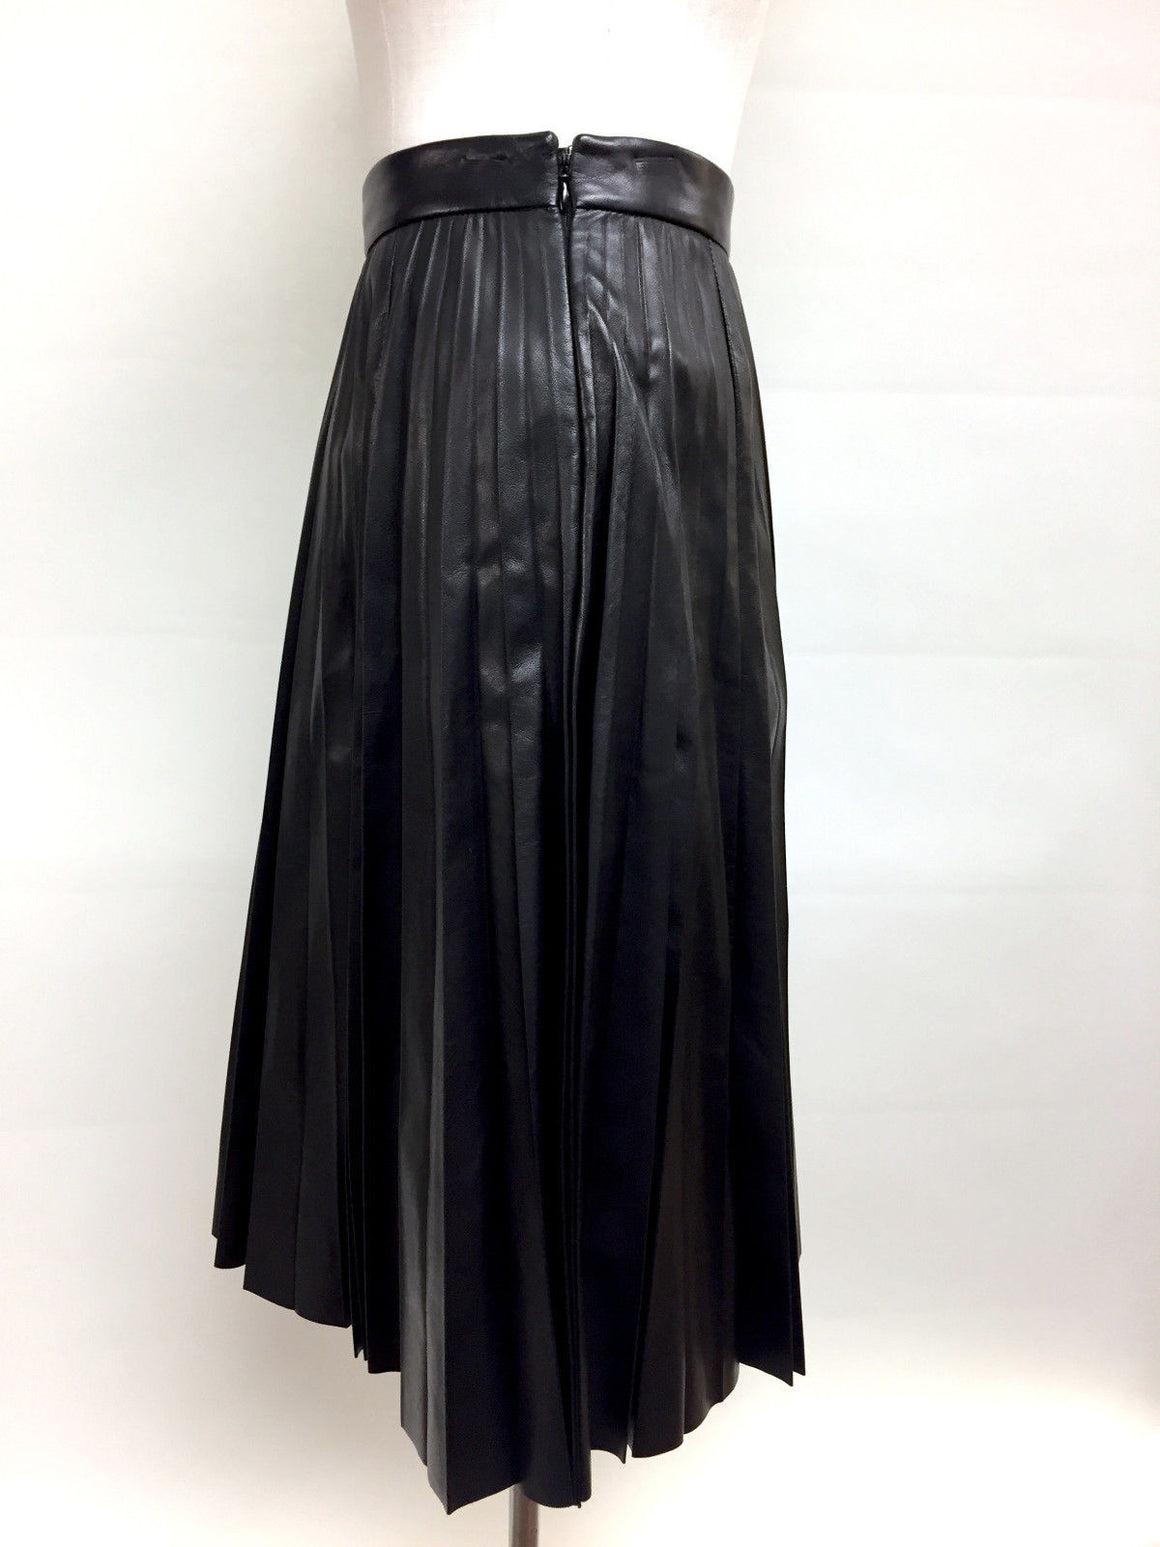 bisbiz.com PRADA Black Lambskin Leather Pleated Knee-Length Skirt  Size: IT38 / US4 - Bis Luxury Resale